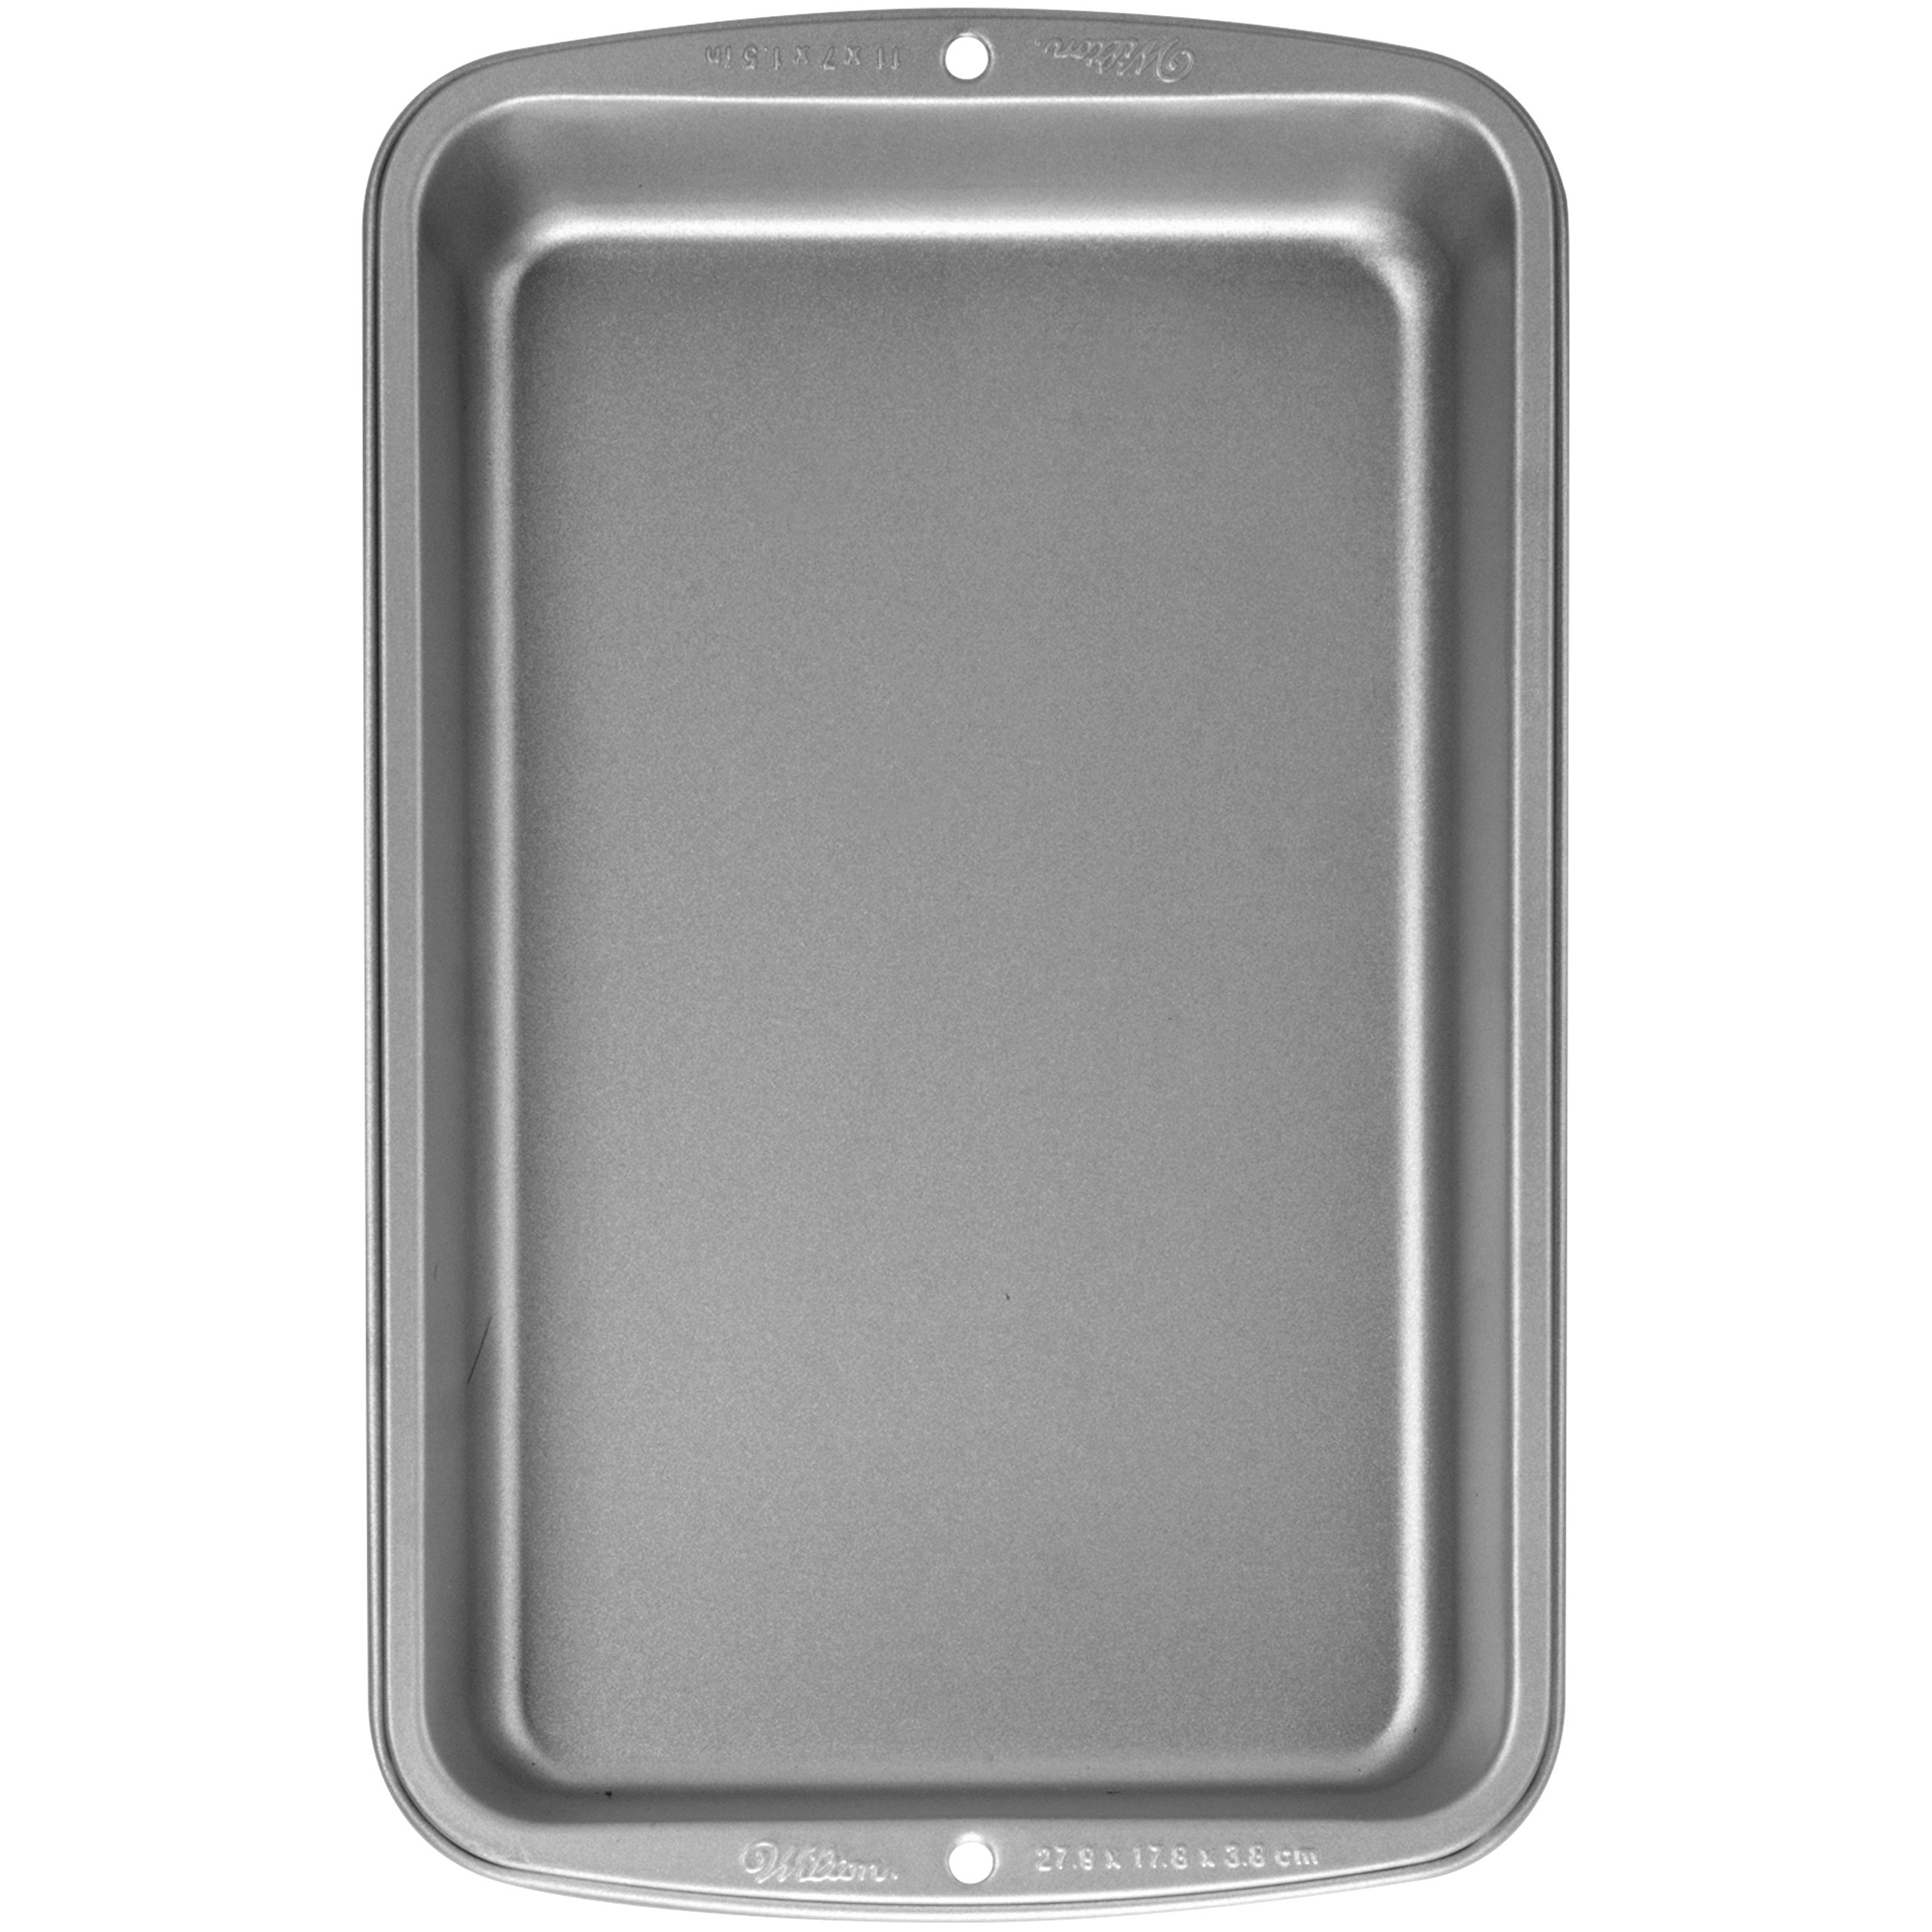 Wilton Recipe Right 11 Inch x 7 Inch x 0.5 inch Biscuit Brownie Pan by Wilton (Image #2)